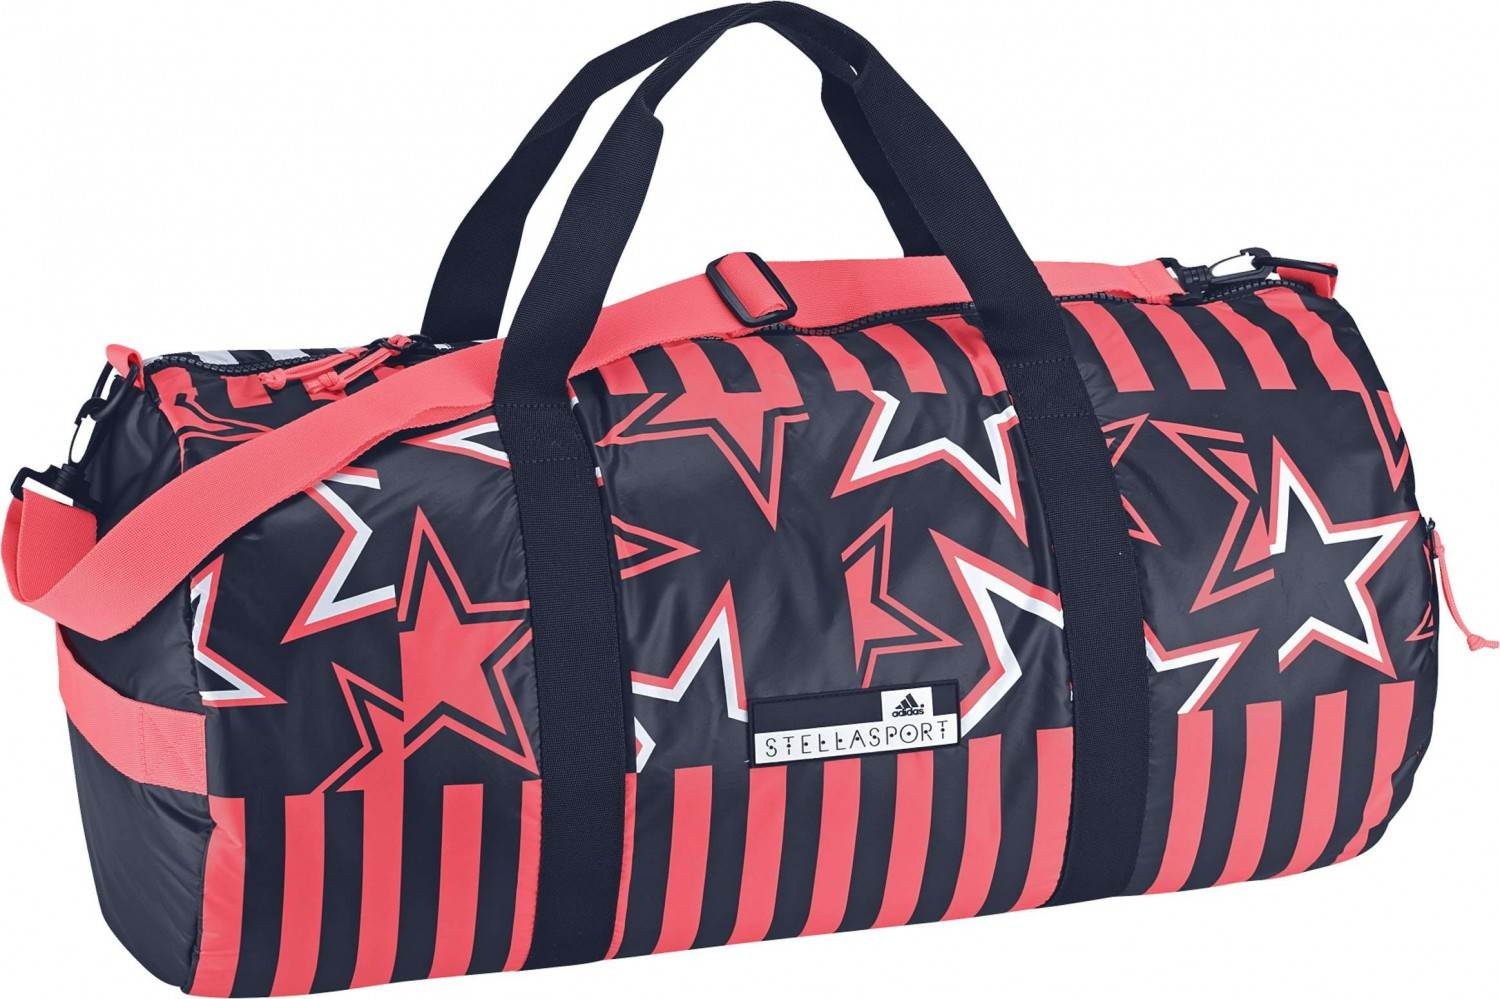 Hosena Angebote adidas Stella Sport Teambag Printed Sporttasche (Farbe: night indigo/flash red s15)